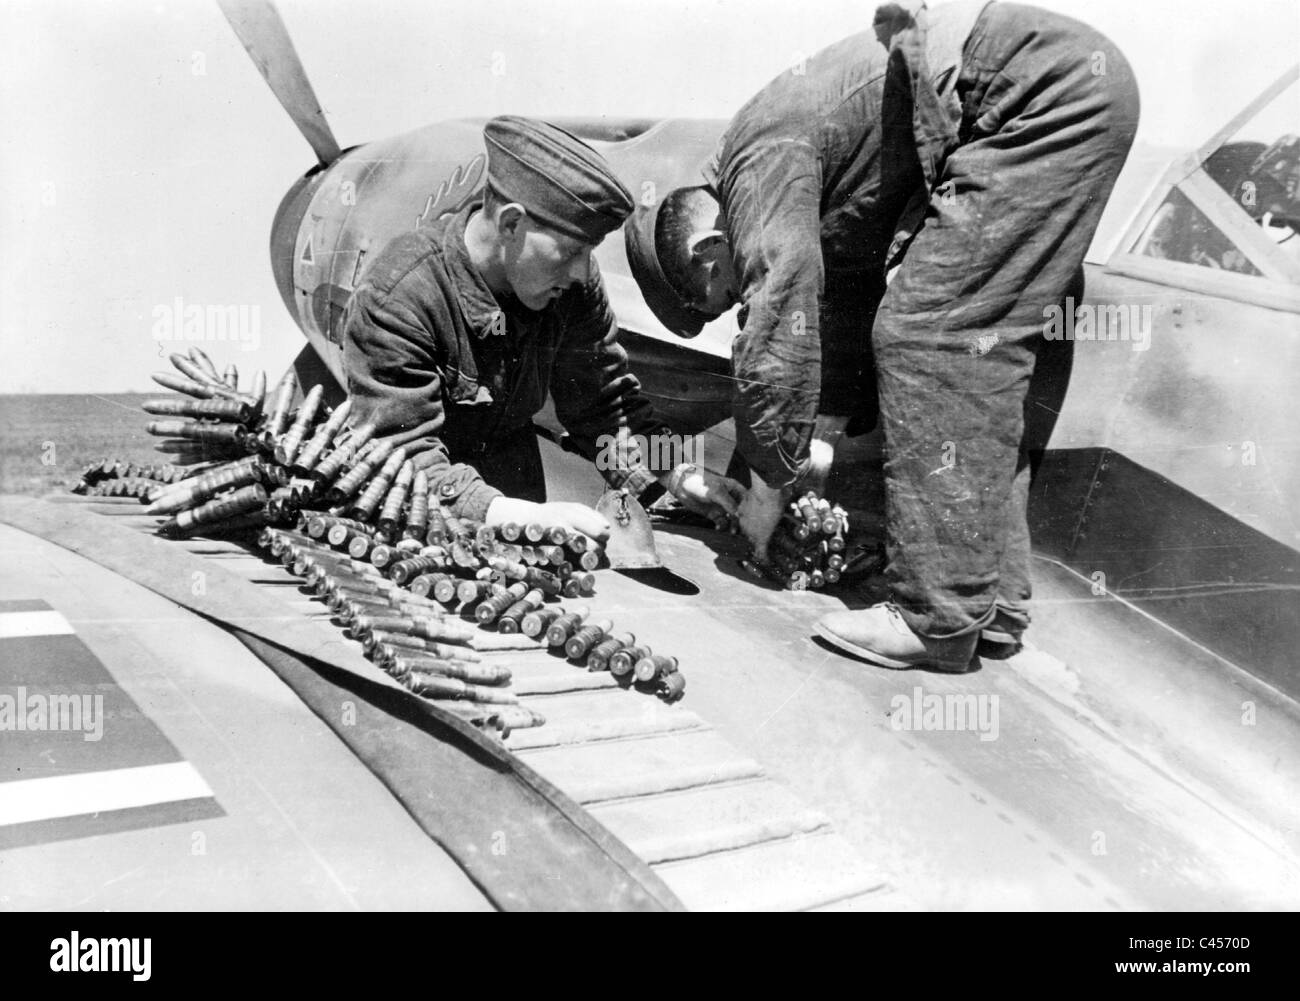 Ground crew reload ammunition in a fighter plane, 1942 - Stock Image